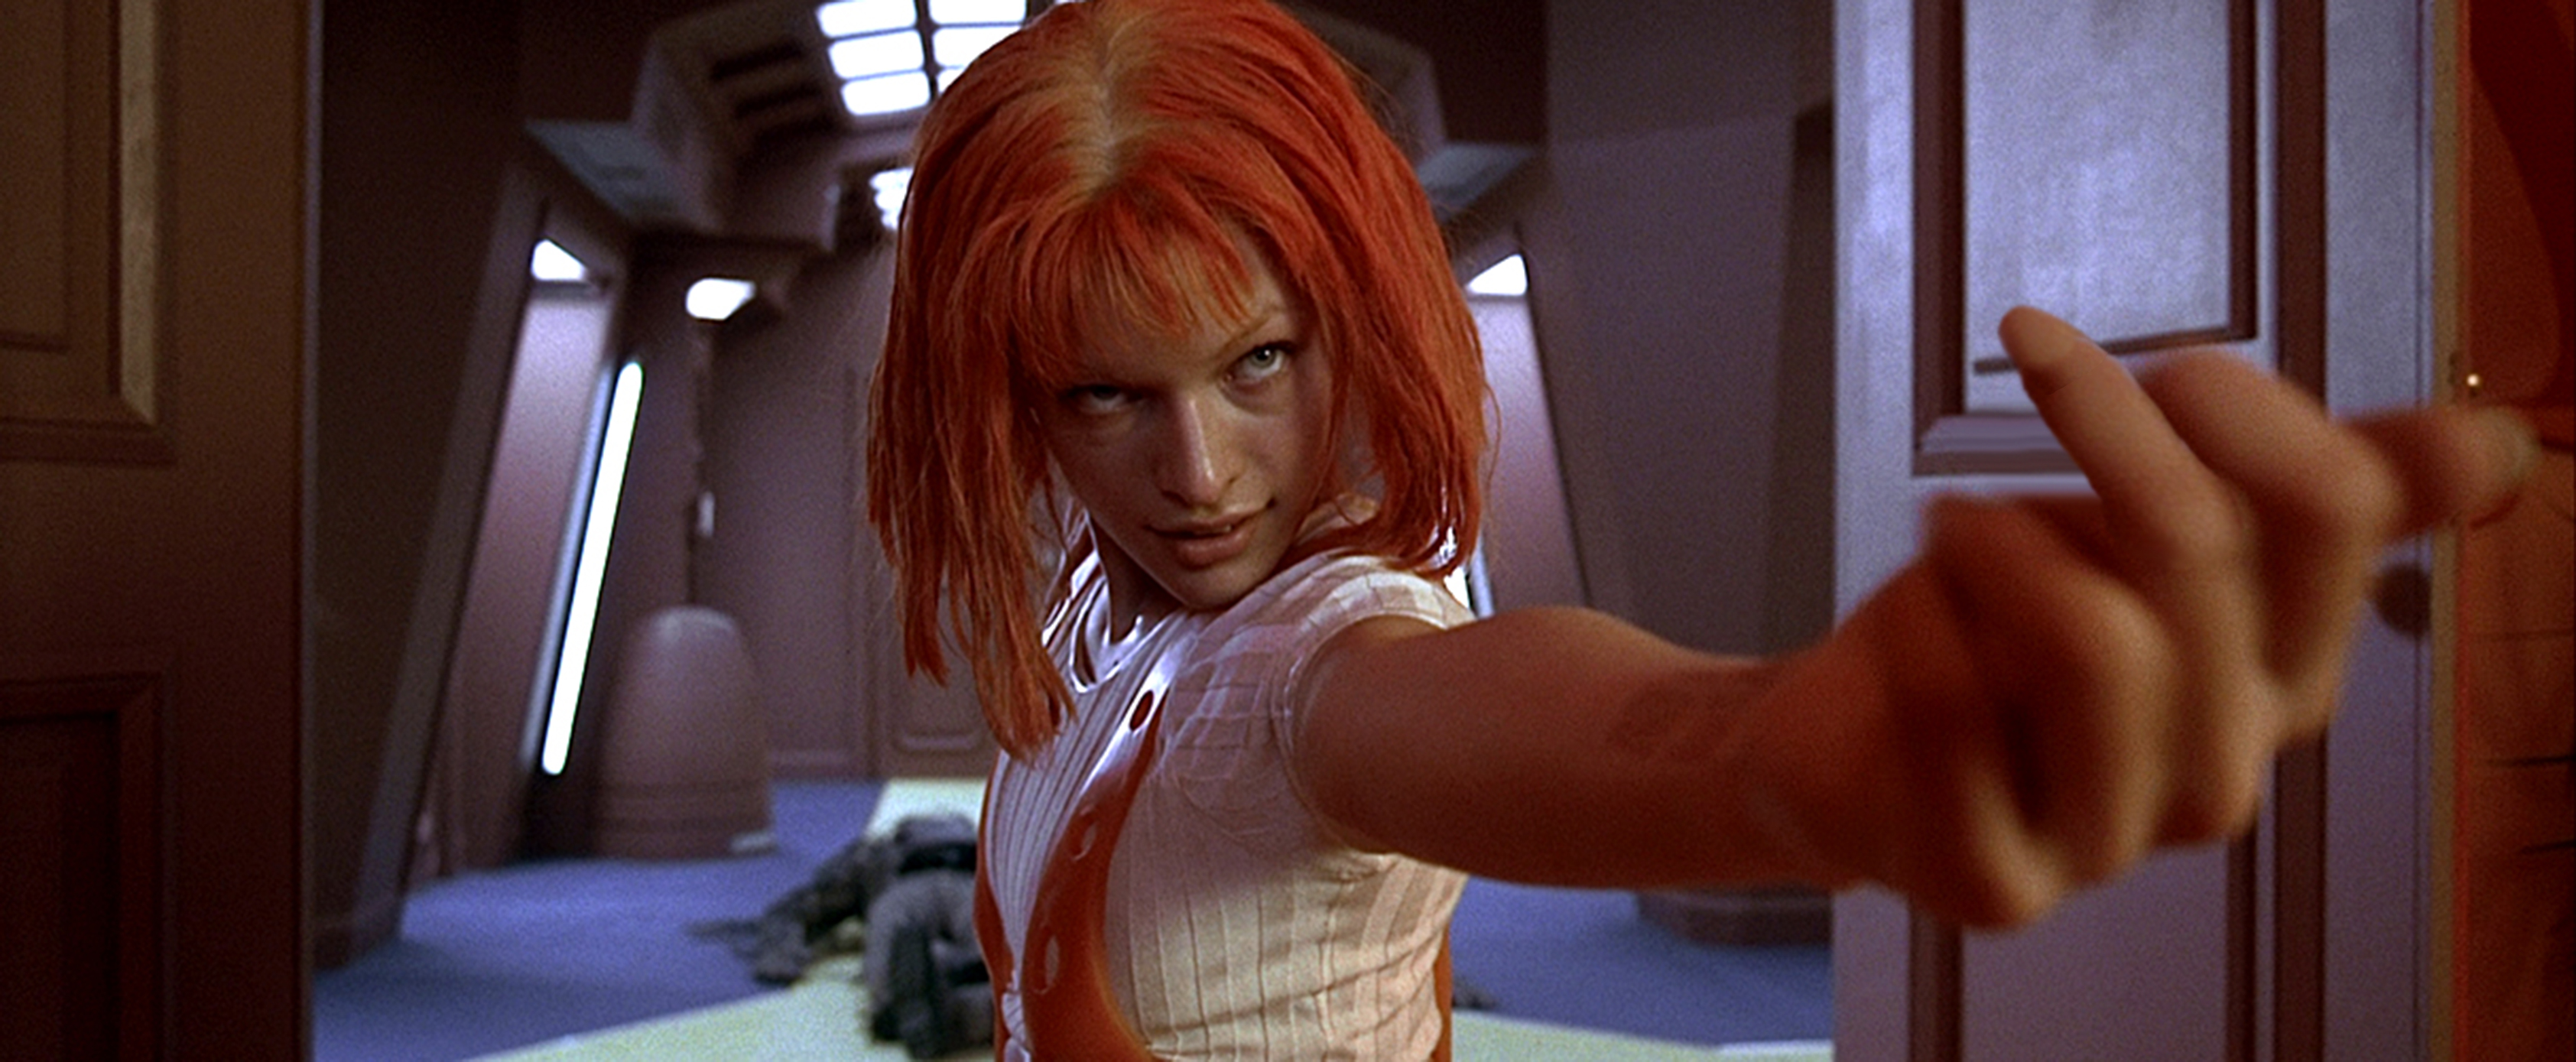 The Fifth Element is one of my favorite movies because of the strong female lead.